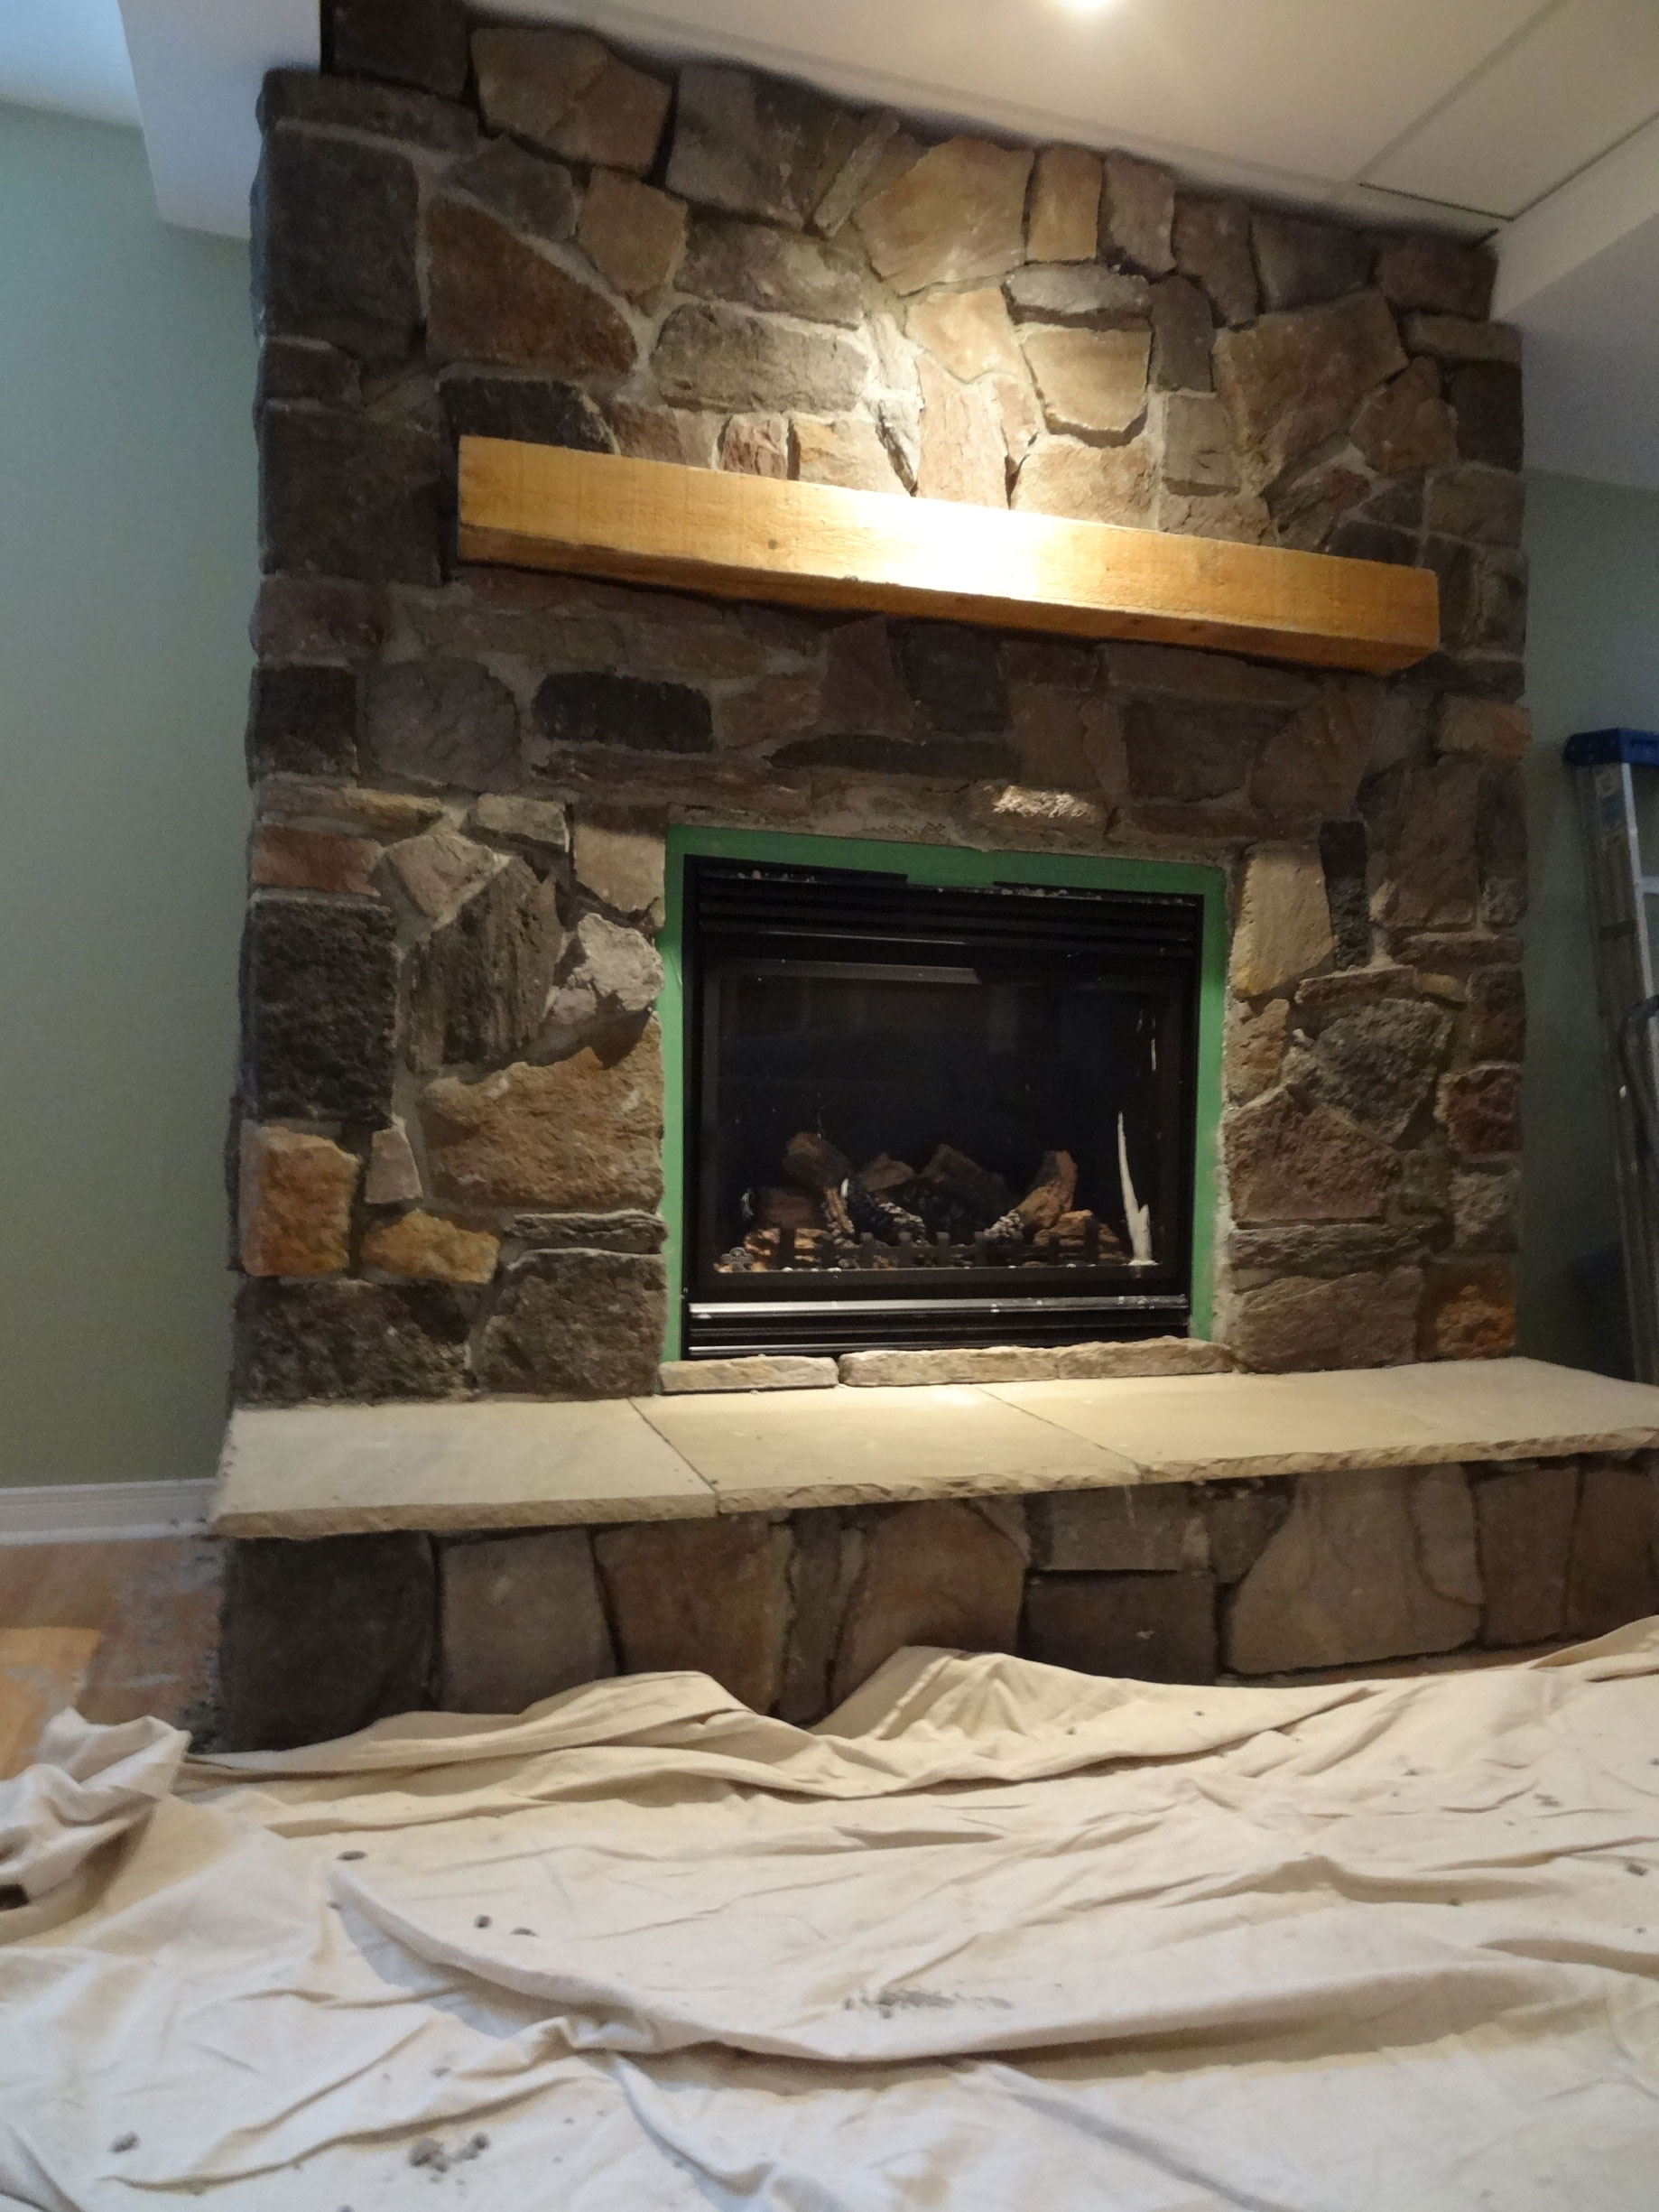 Cultured stone fireplace surround - Natural Stone Fireplace Surround Ottawa Case Study Techniques